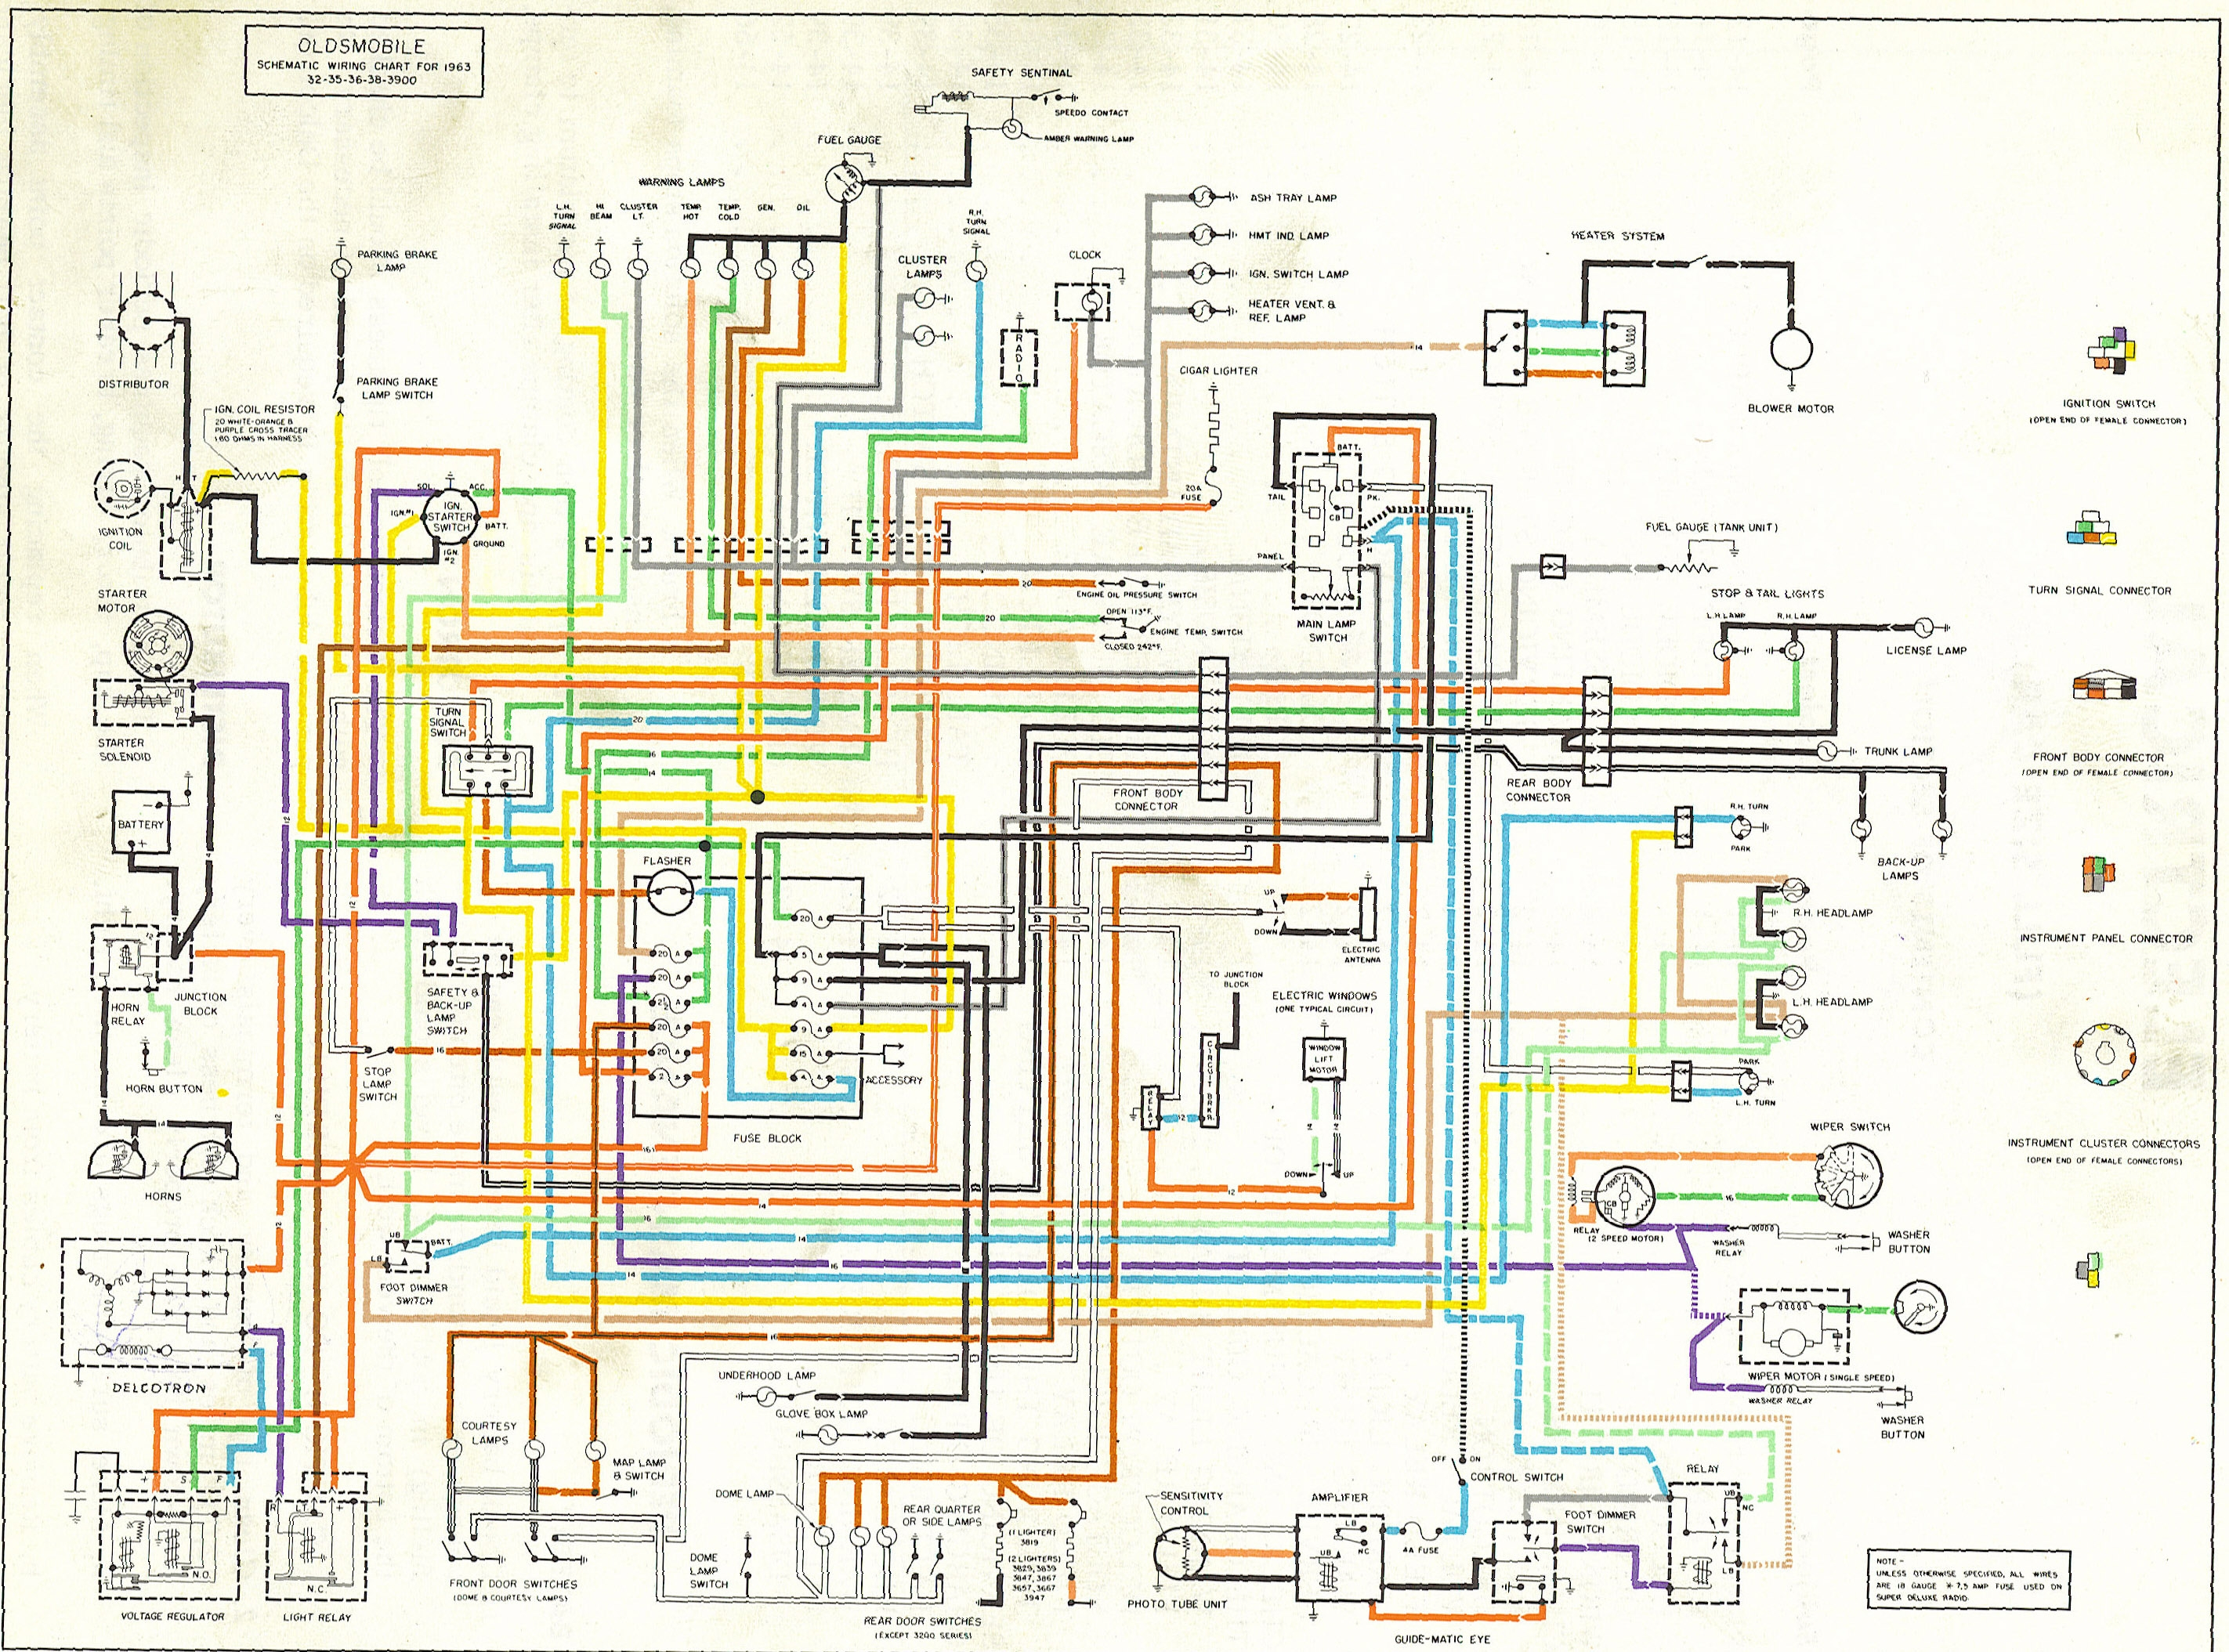 1971 camaro wiring diagram Collection-oldsmobile wiring diagrams the old car manual project rh oldcarmanualproject 1971 Oldsmobile Omega 1974 Oldsmobile 5-h